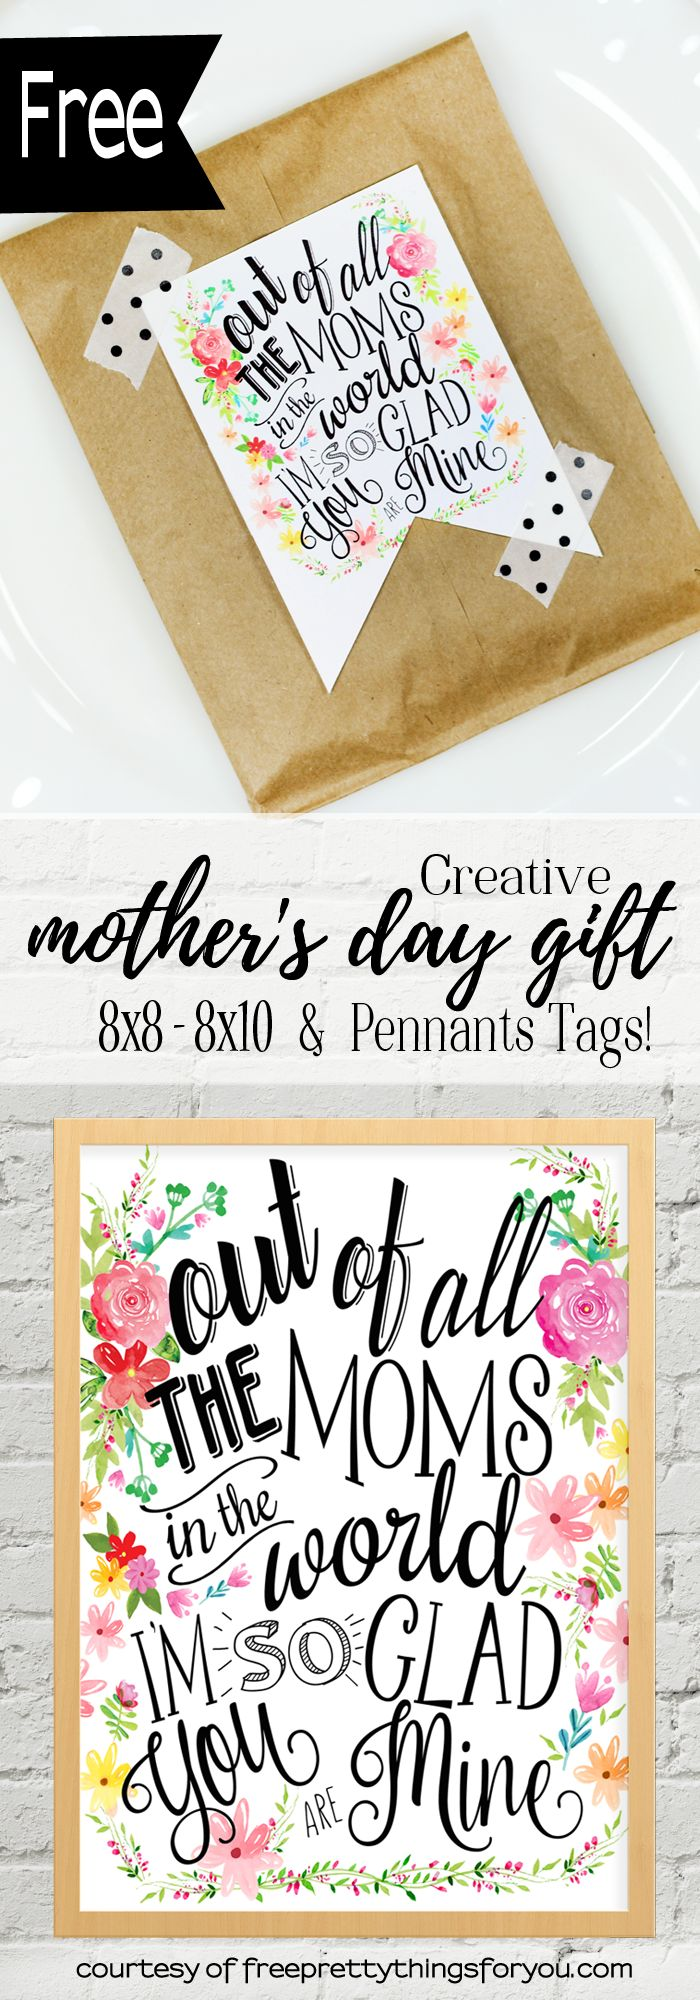 Best 25 Mothers day printables ideas on Pinterest  Mothers day